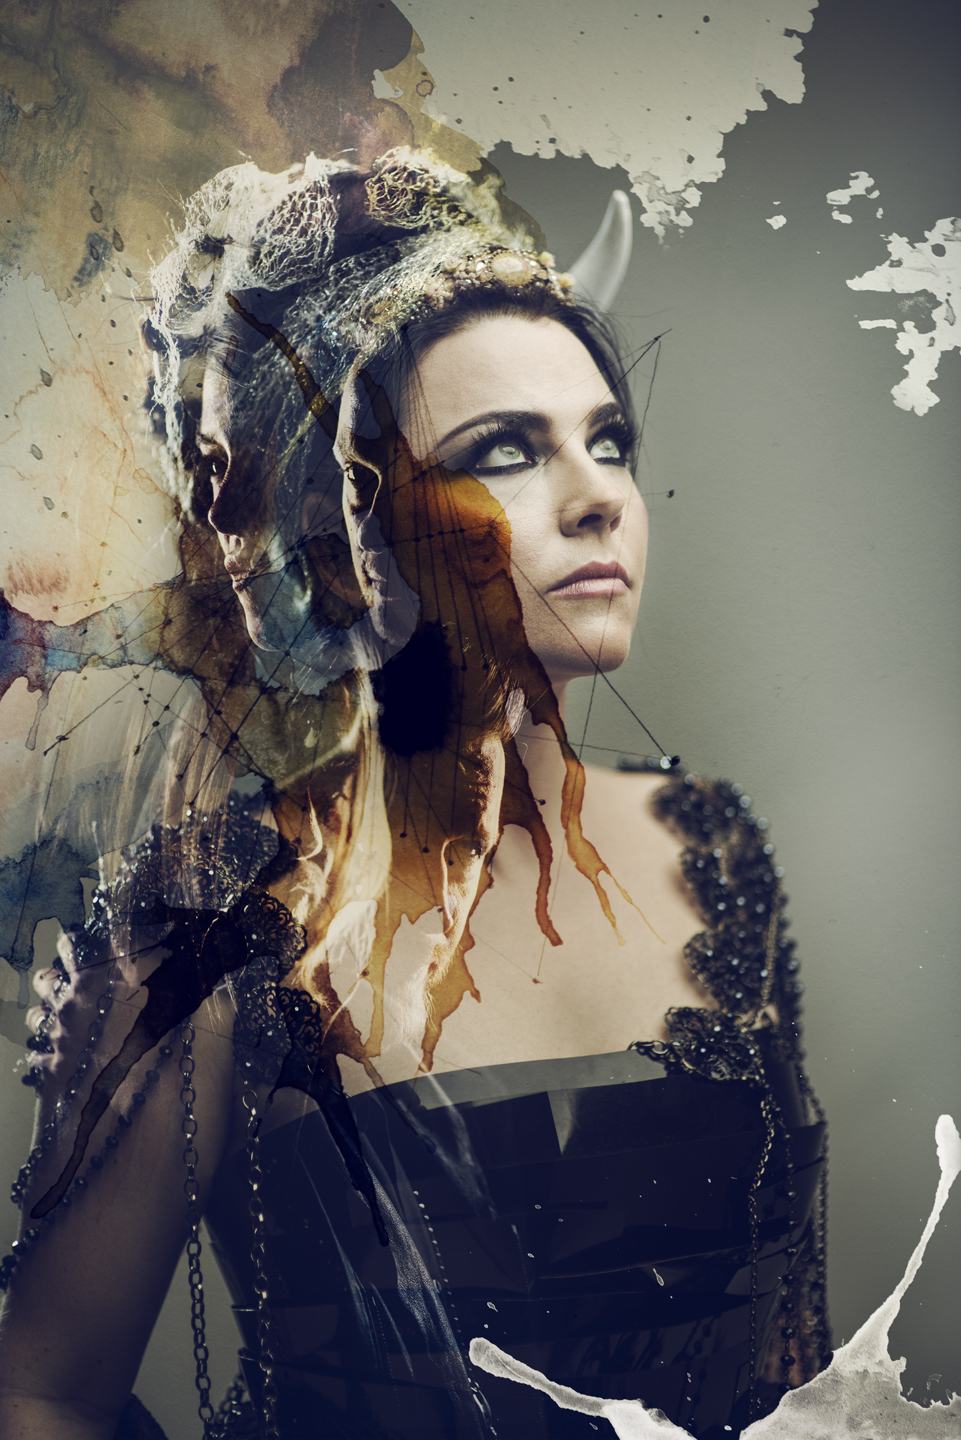 http://msopr.com/files/amy_lee-evanescence-credit-p.r.brown.jpg